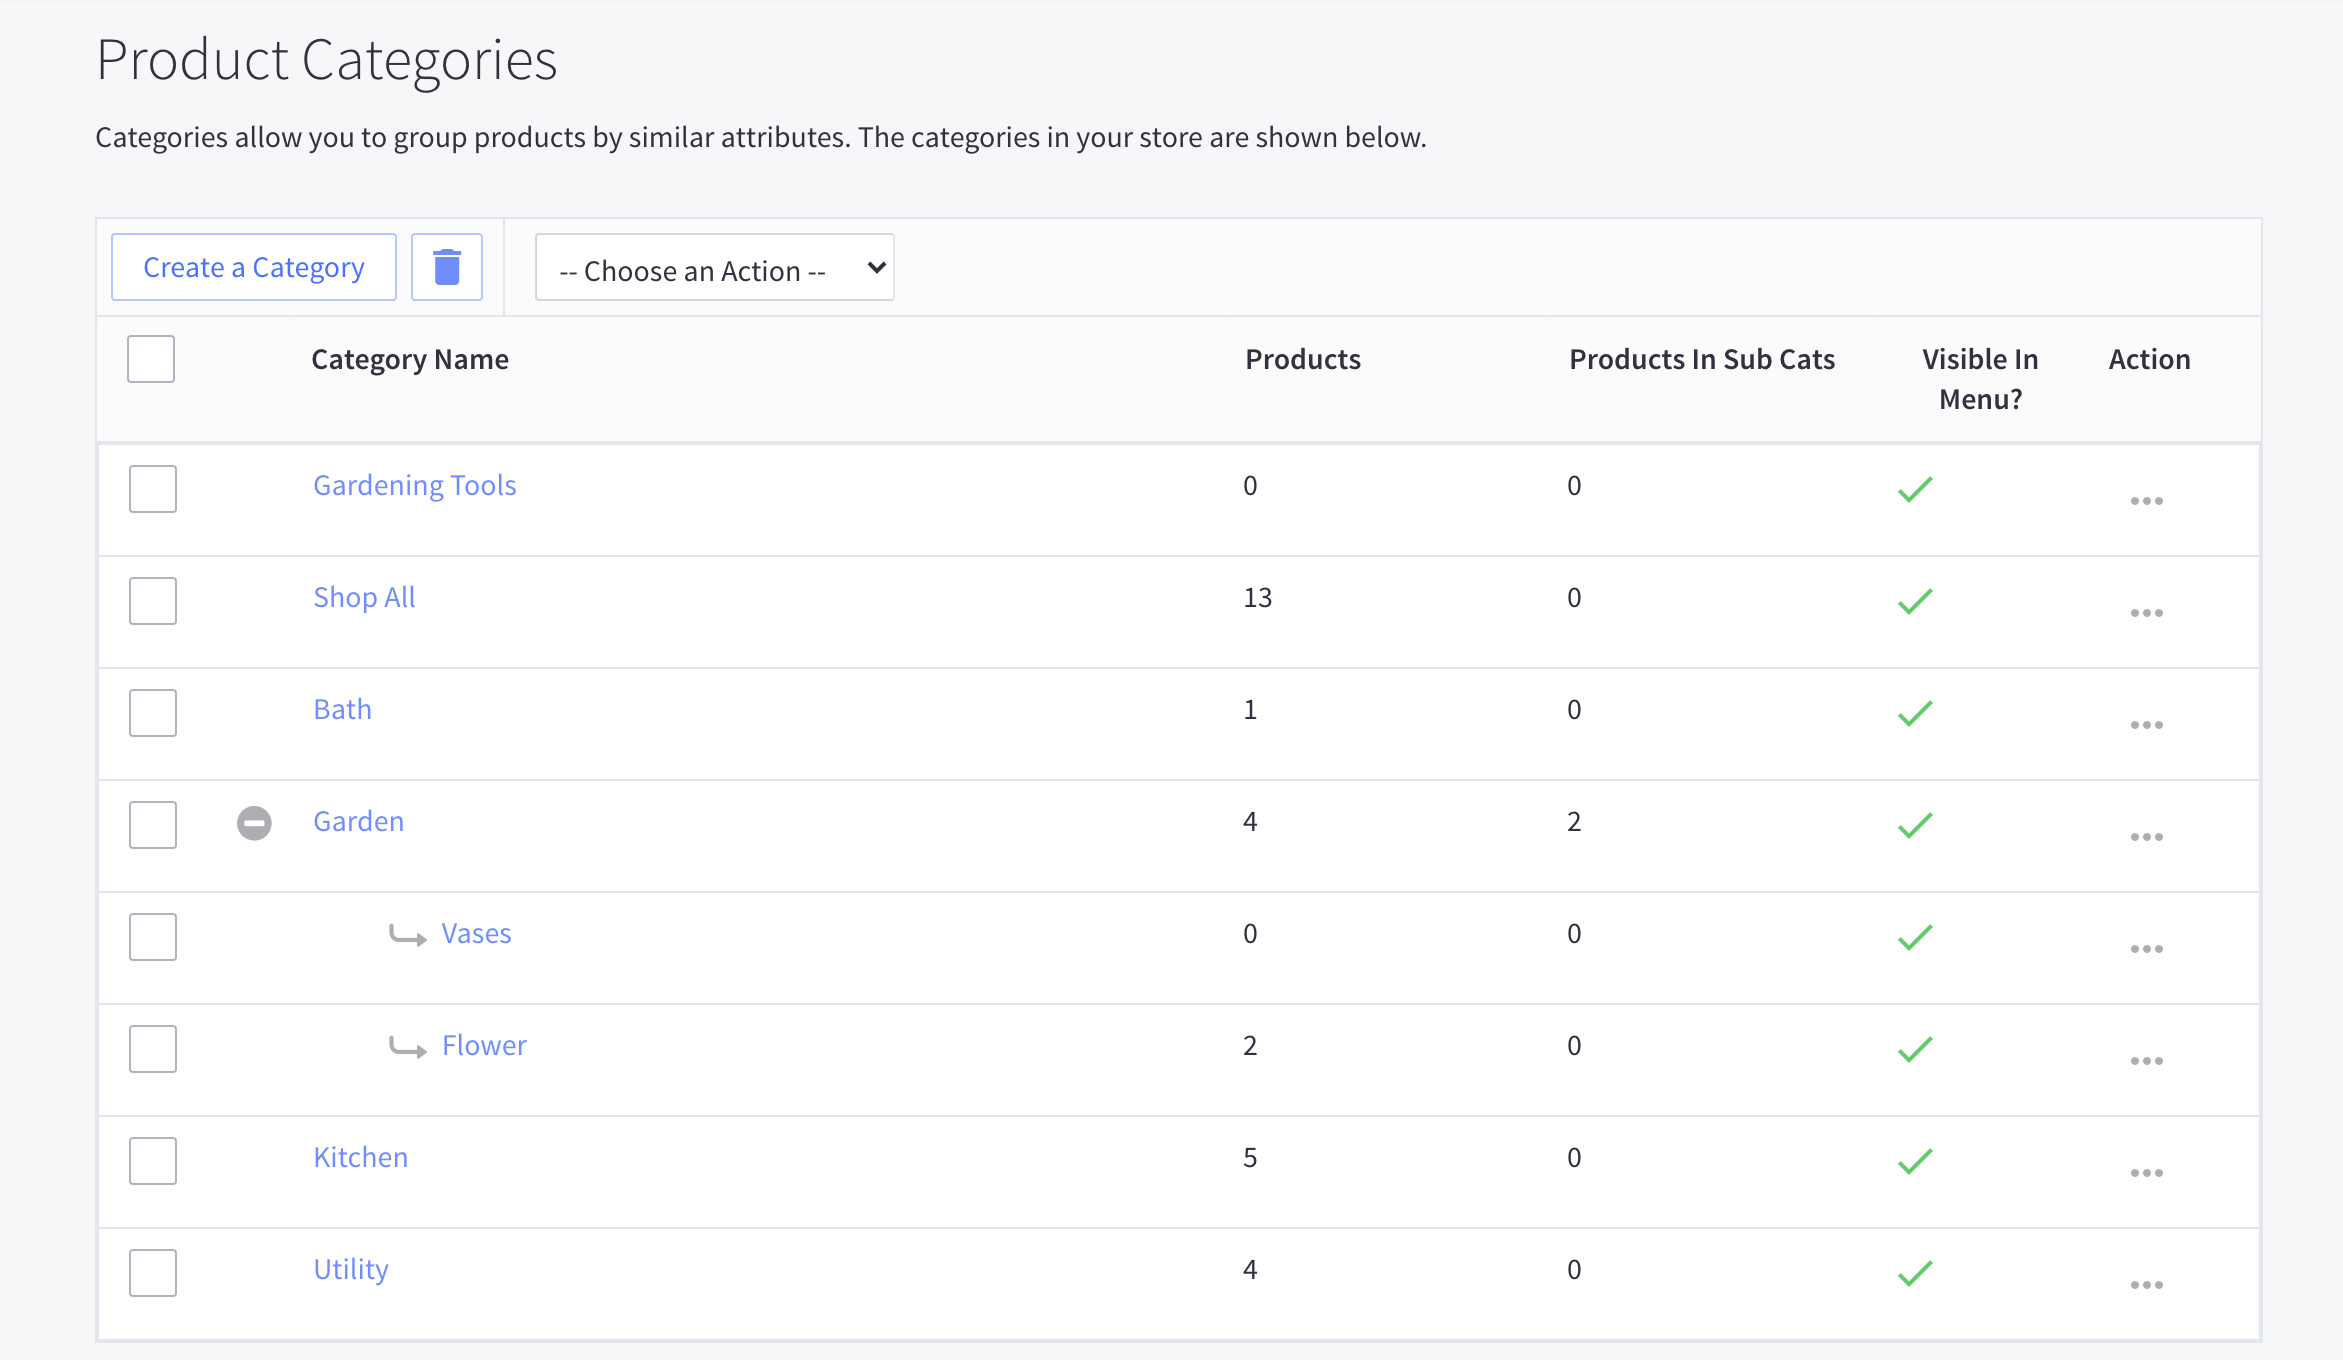 Product Sub Categories